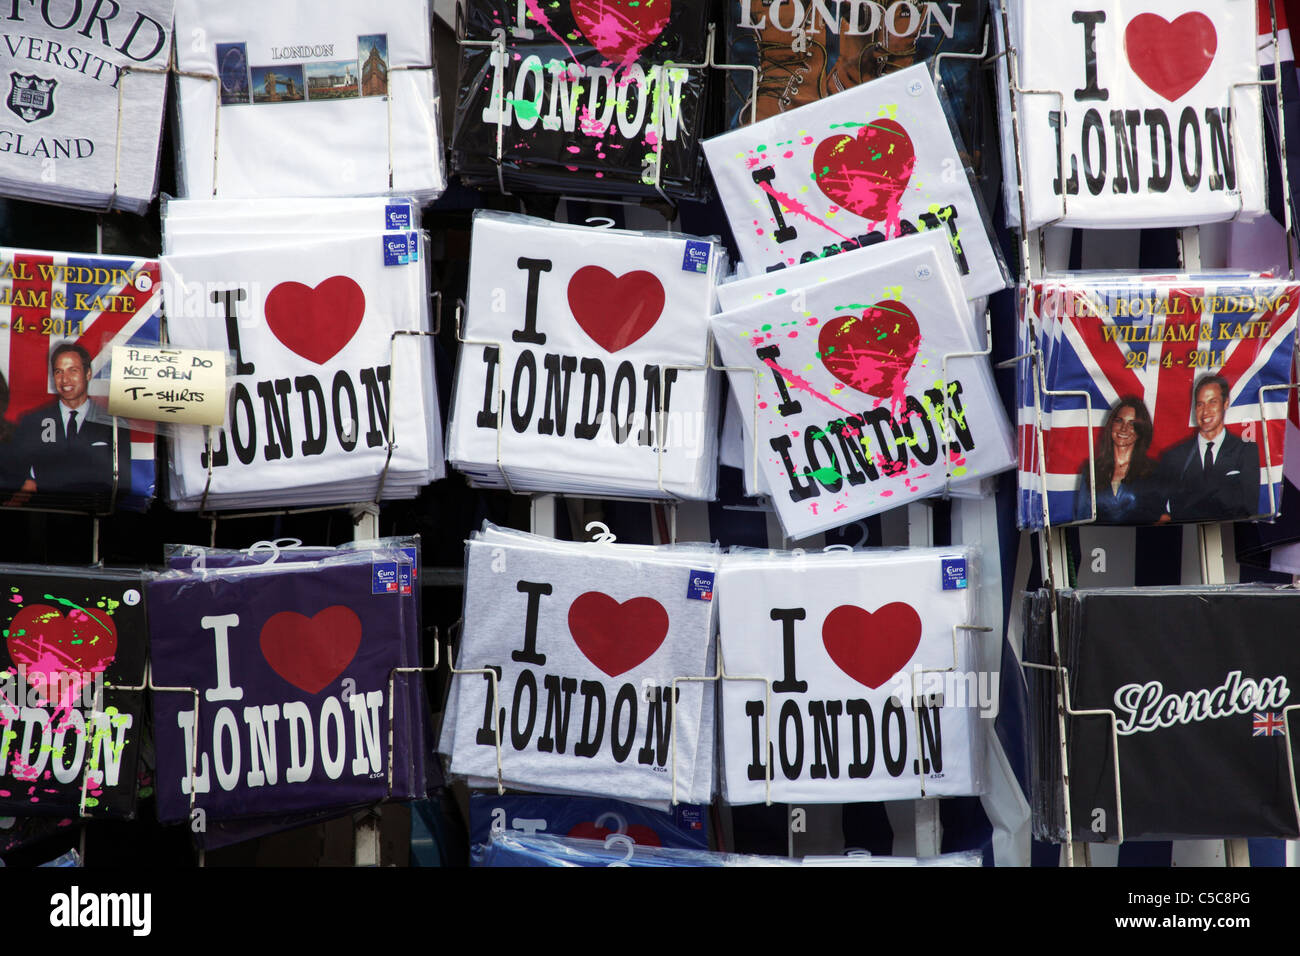 Covent Garden, London; Street Stall Selling I Love London Tee-shirts - Stock Image